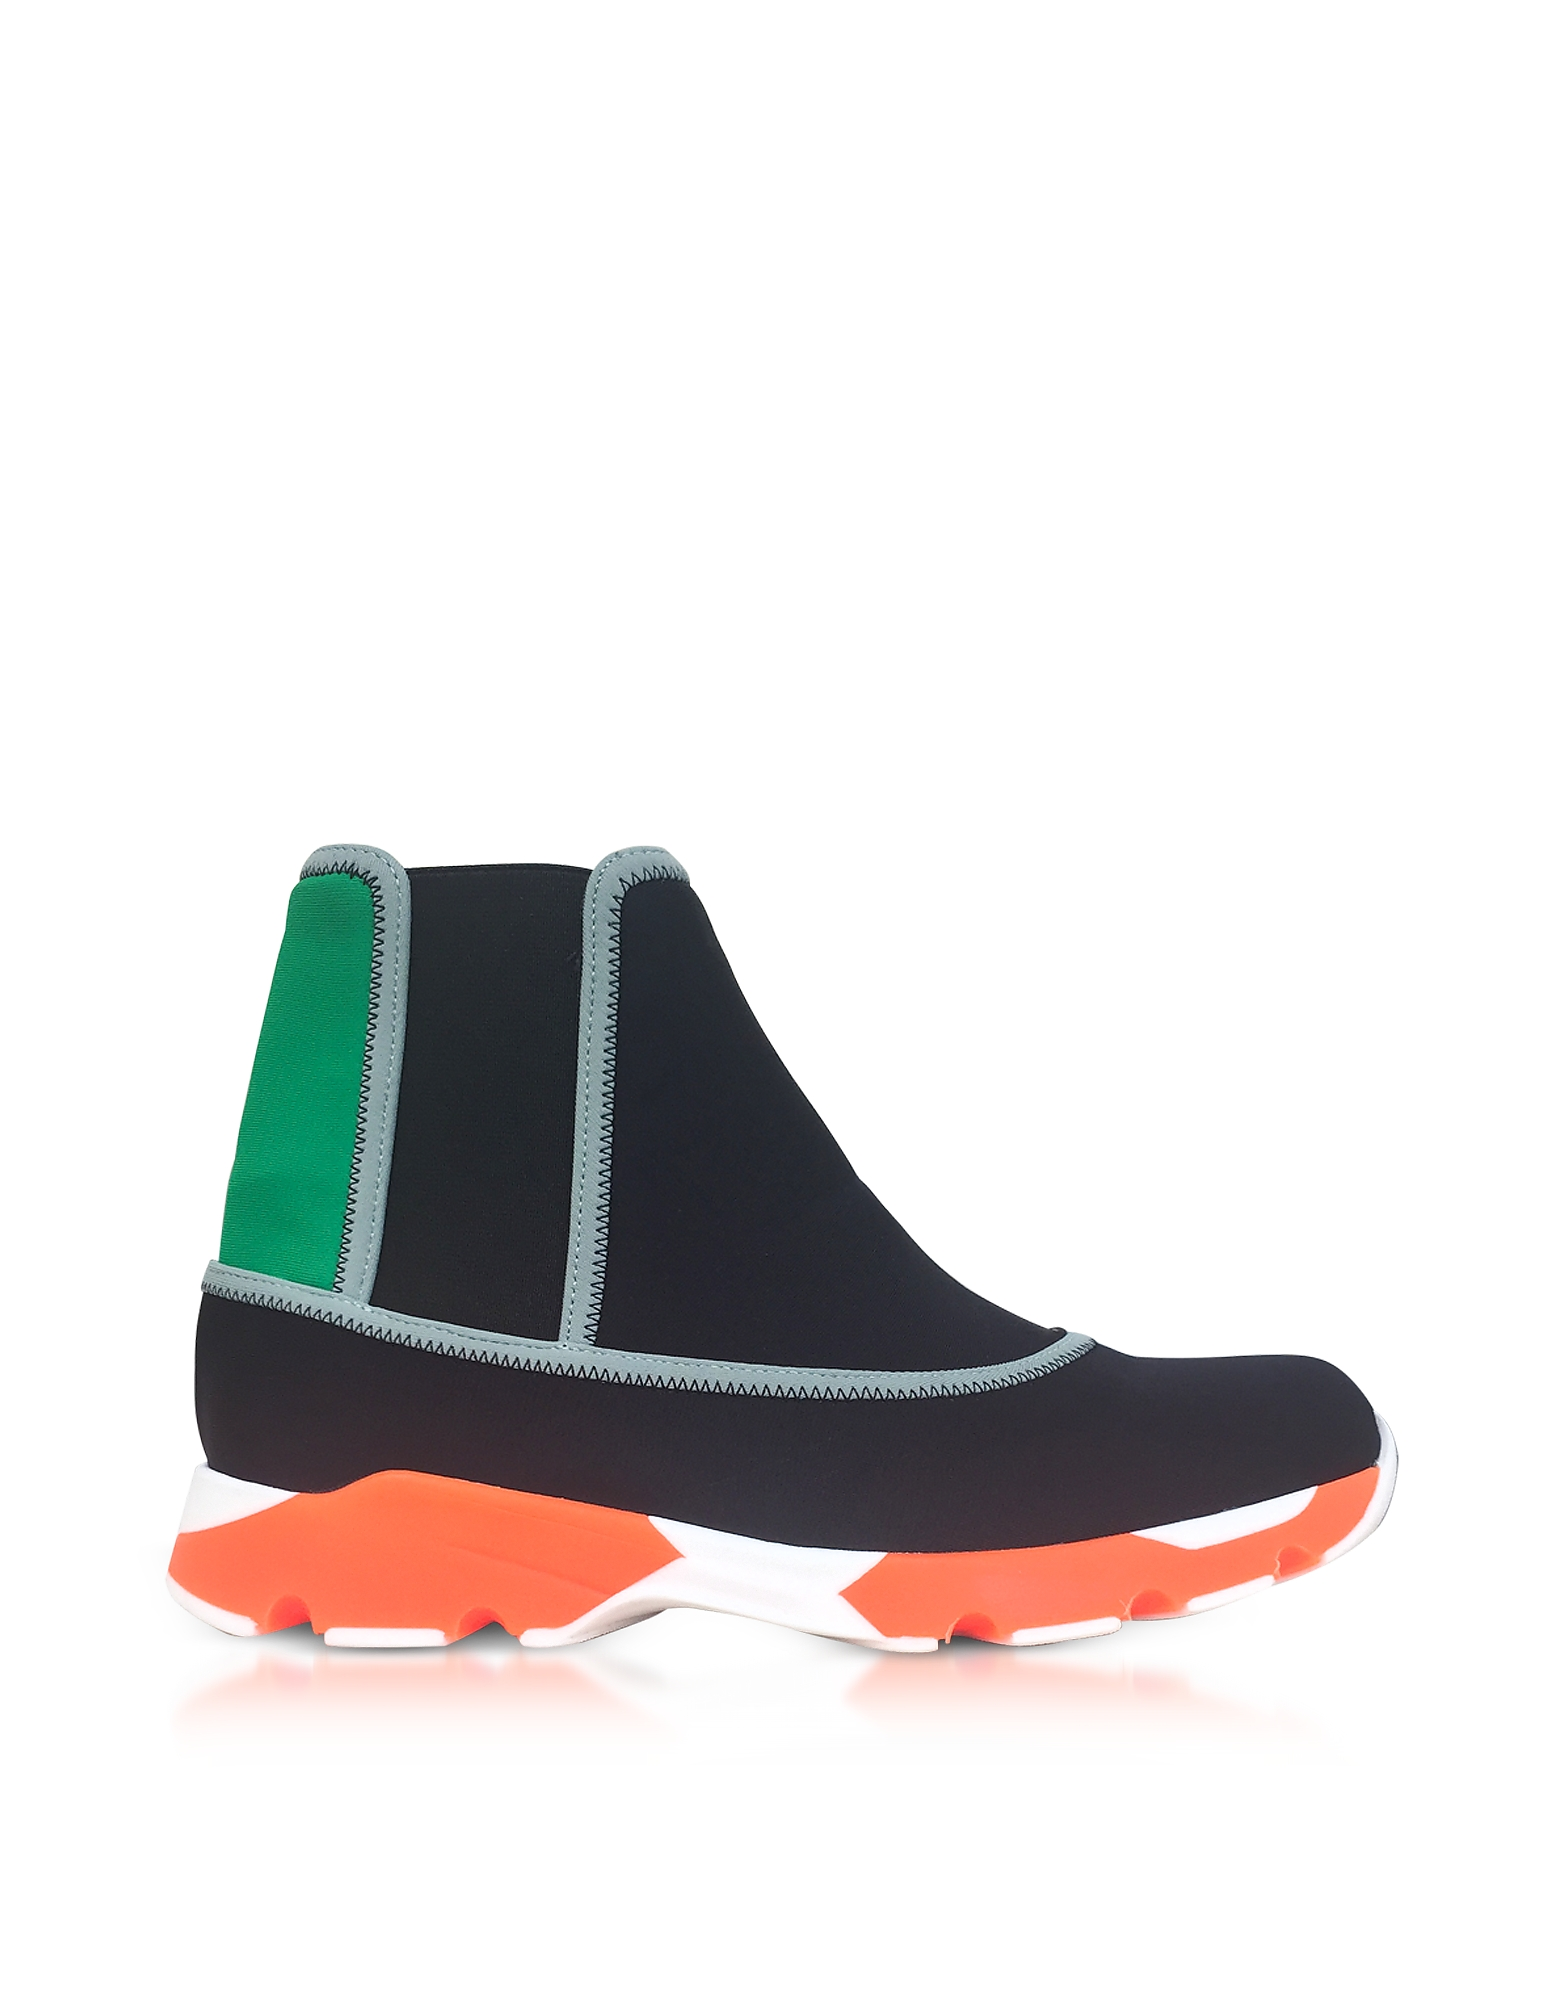 Marni Shoes, Black Neoprene High Top Sneakers